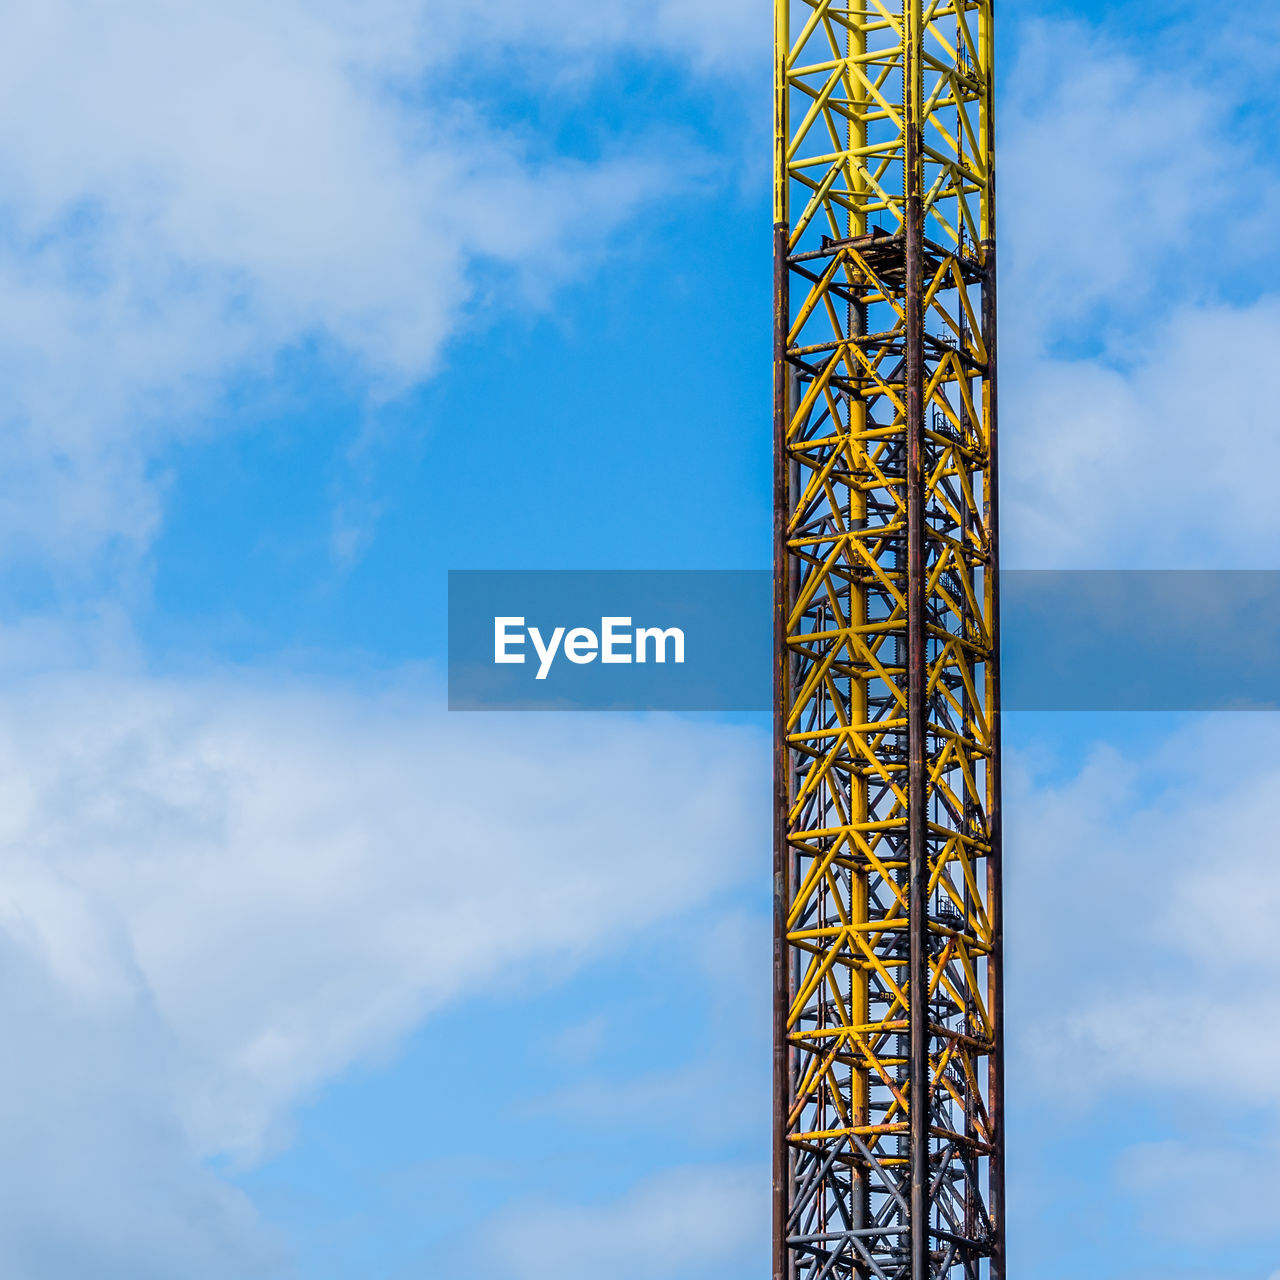 cloud - sky, sky, built structure, low angle view, architecture, day, metal, tower, no people, nature, tall - high, outdoors, industry, blue, crane - construction machinery, construction industry, yellow, construction site, focus on foreground, development, construction equipment